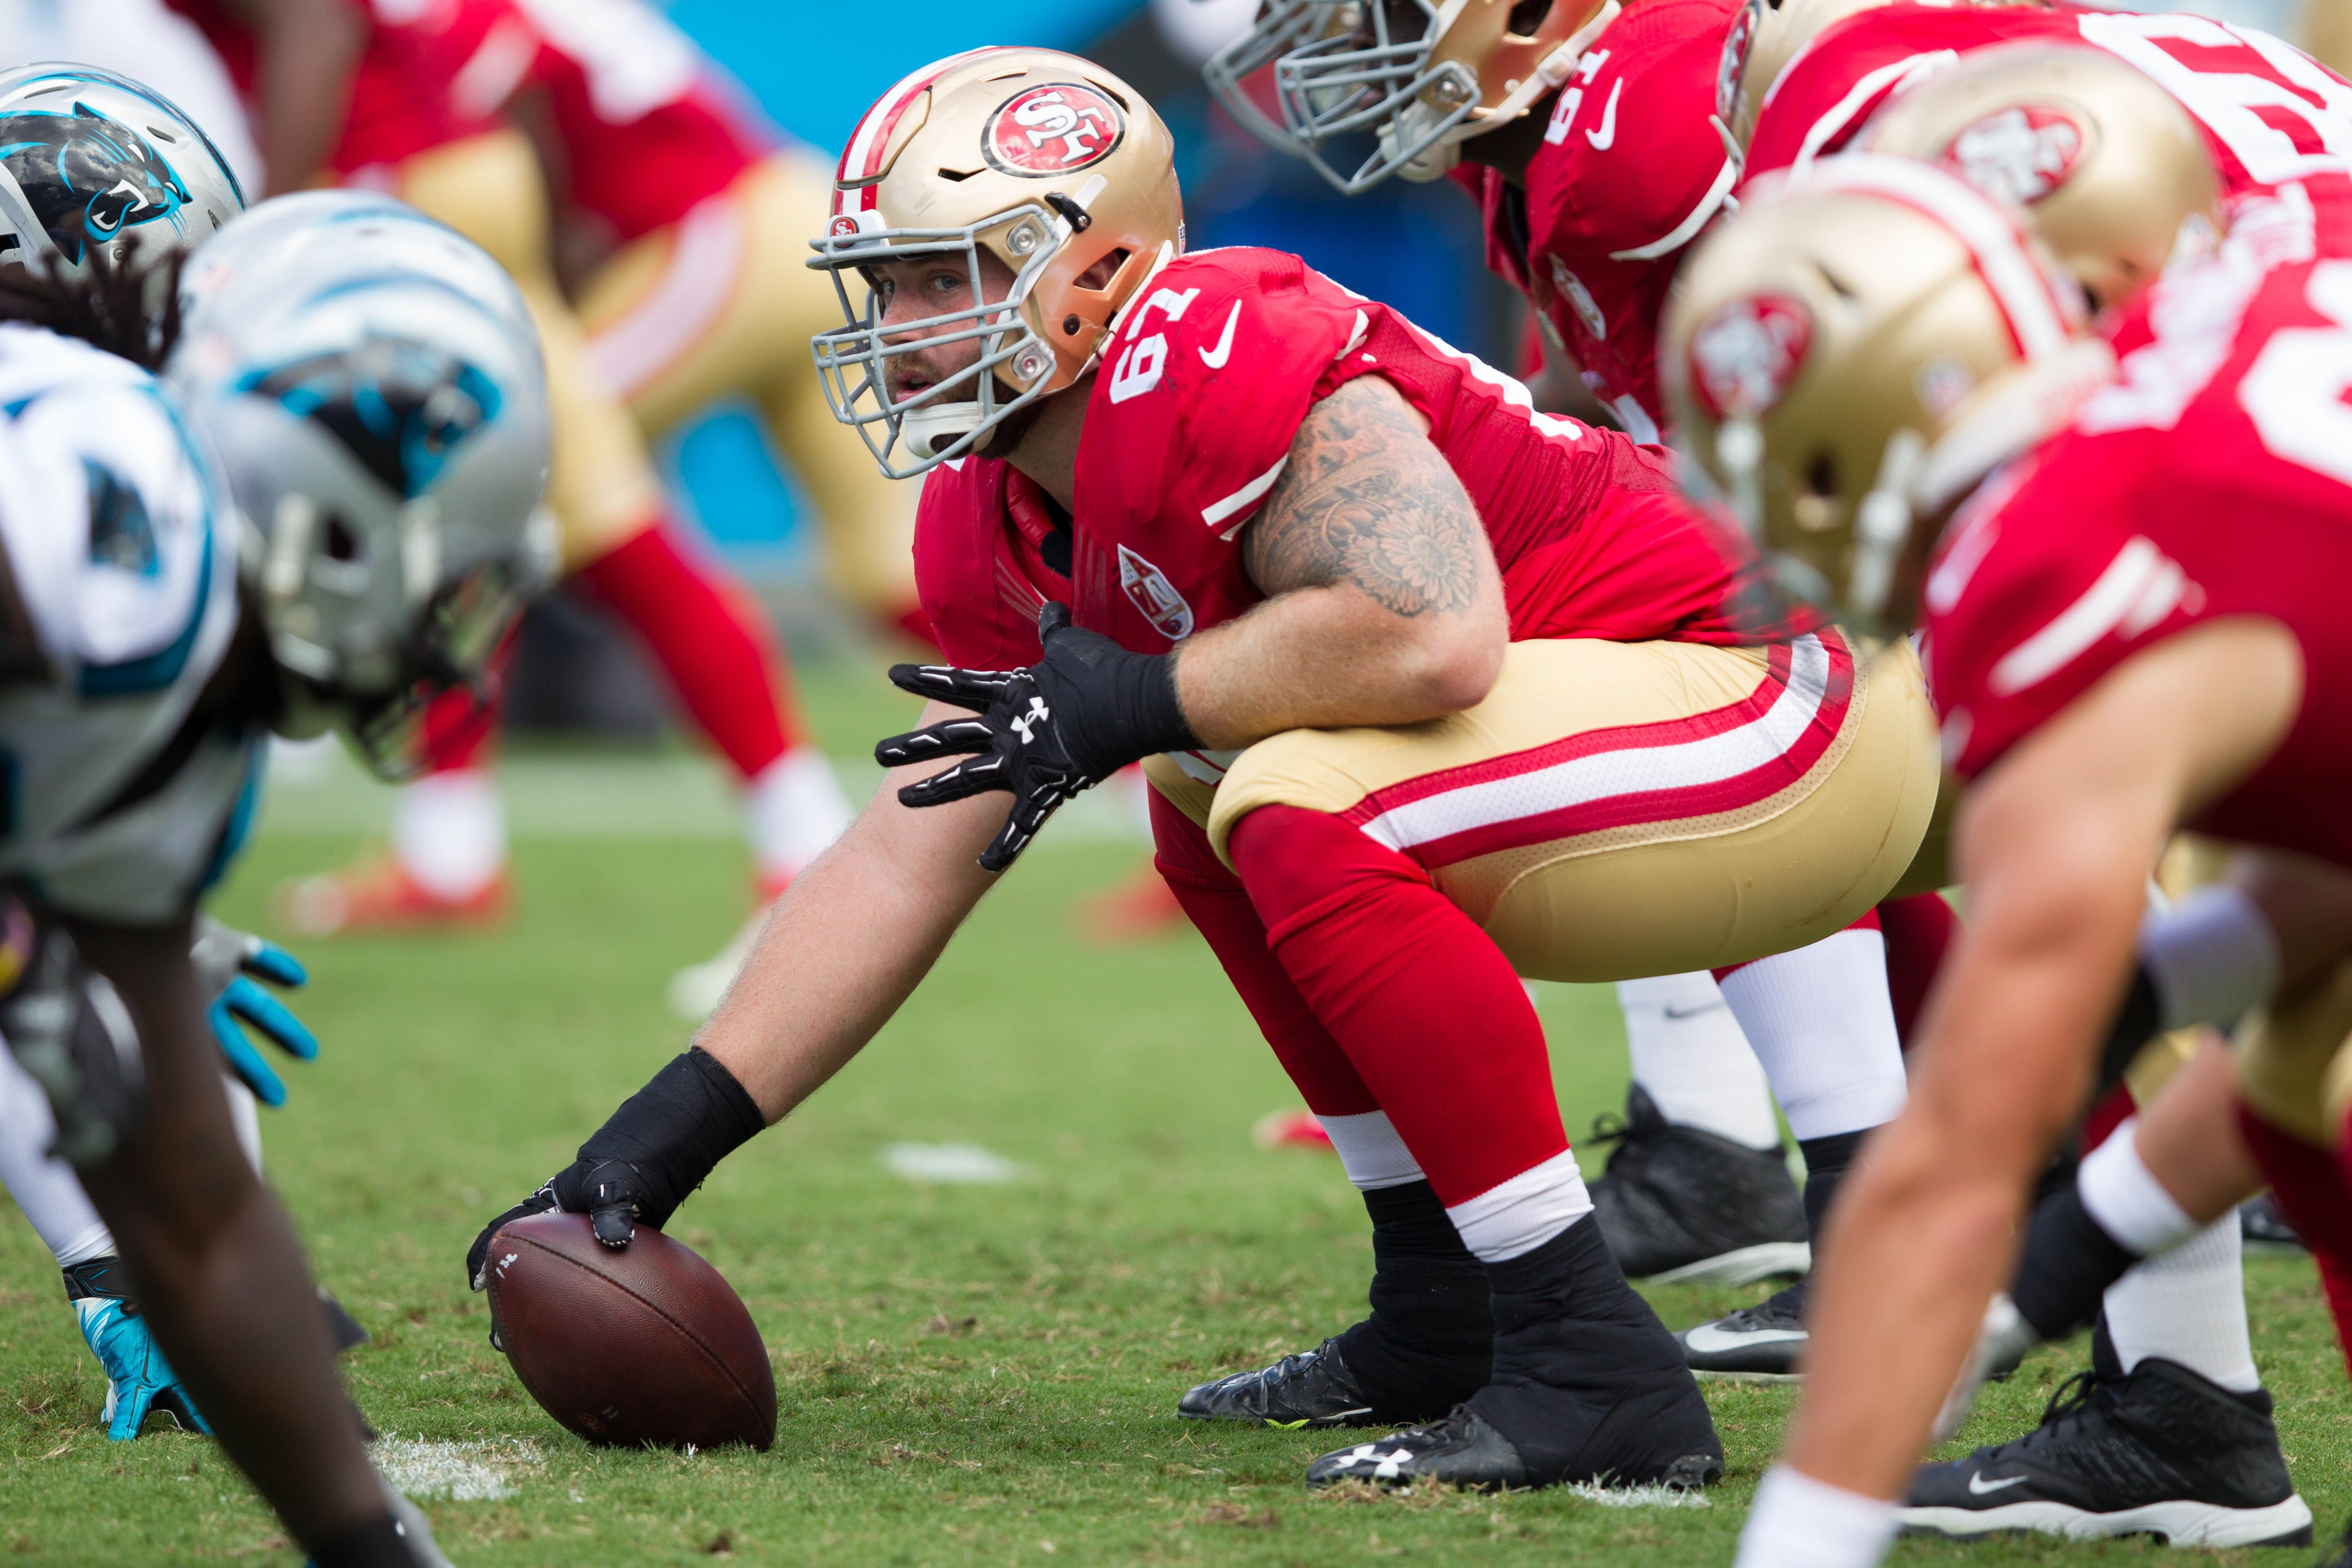 49ers: Will San Francisco's offensive line improve in 2017?